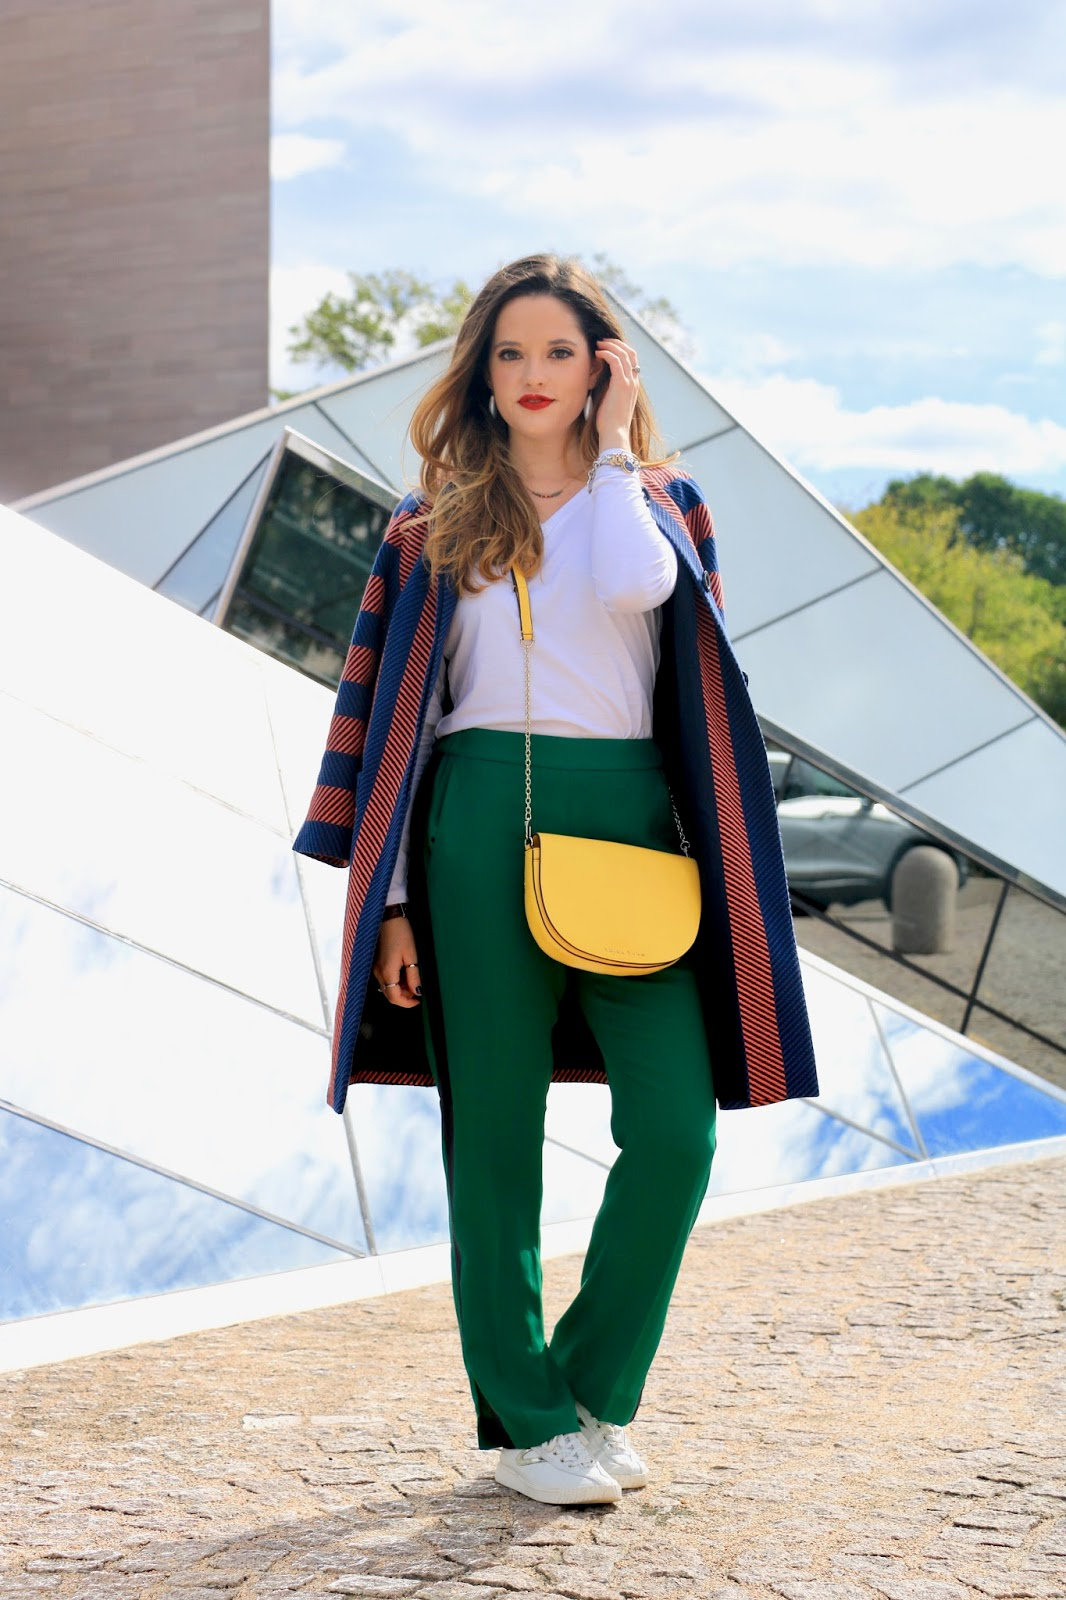 Nyc fashion blogger Kathleen Harper's track pant outfit ideas